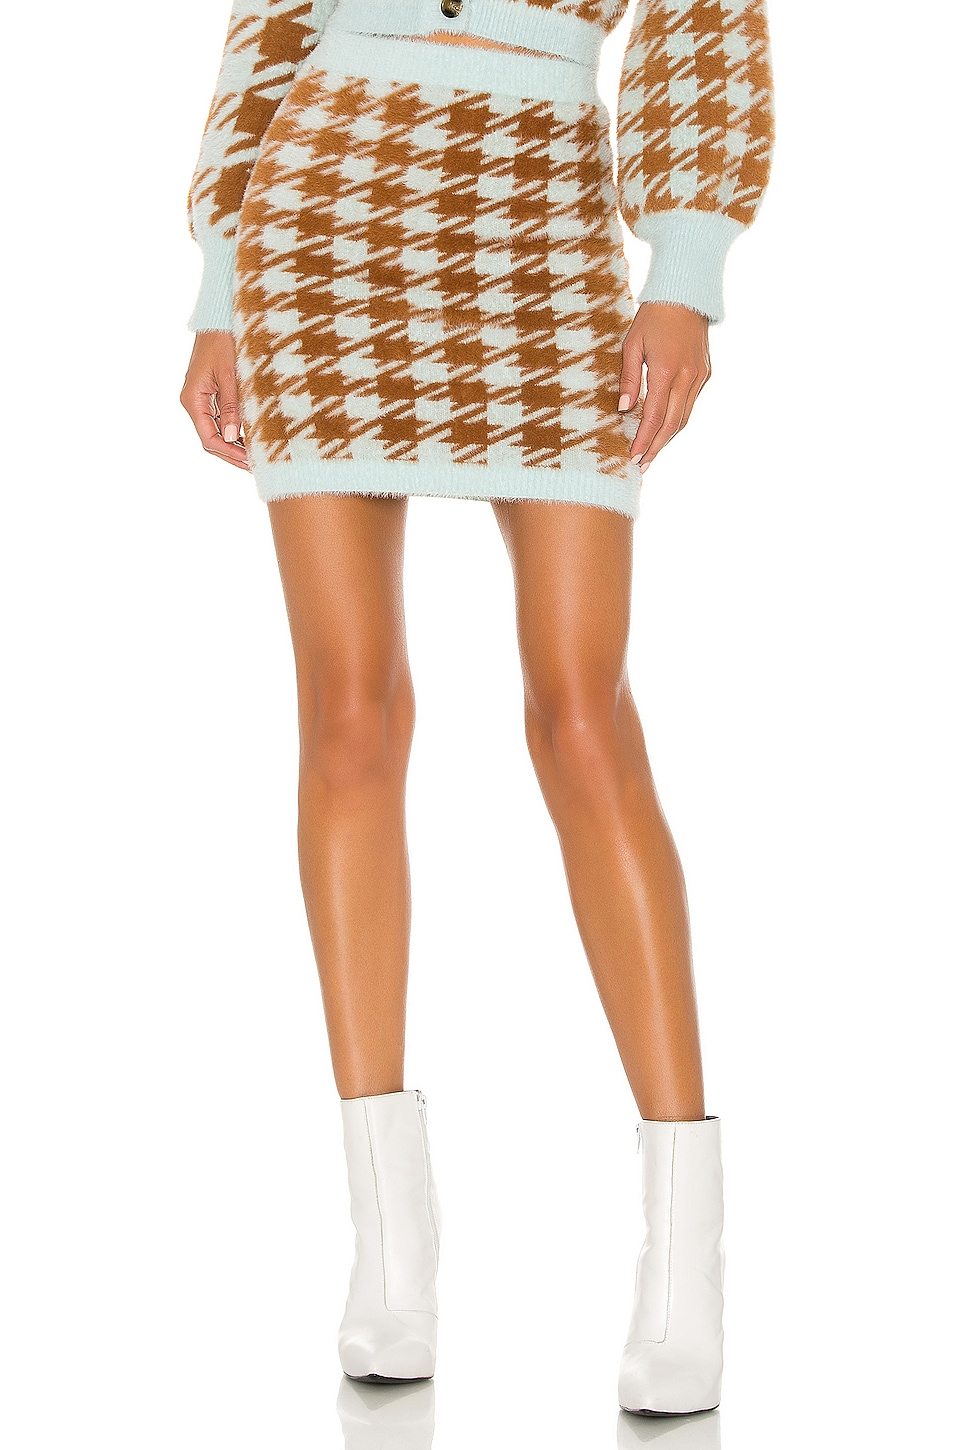 For Love & Lemons Cher Houndstooth Mini Skirt in Toffee